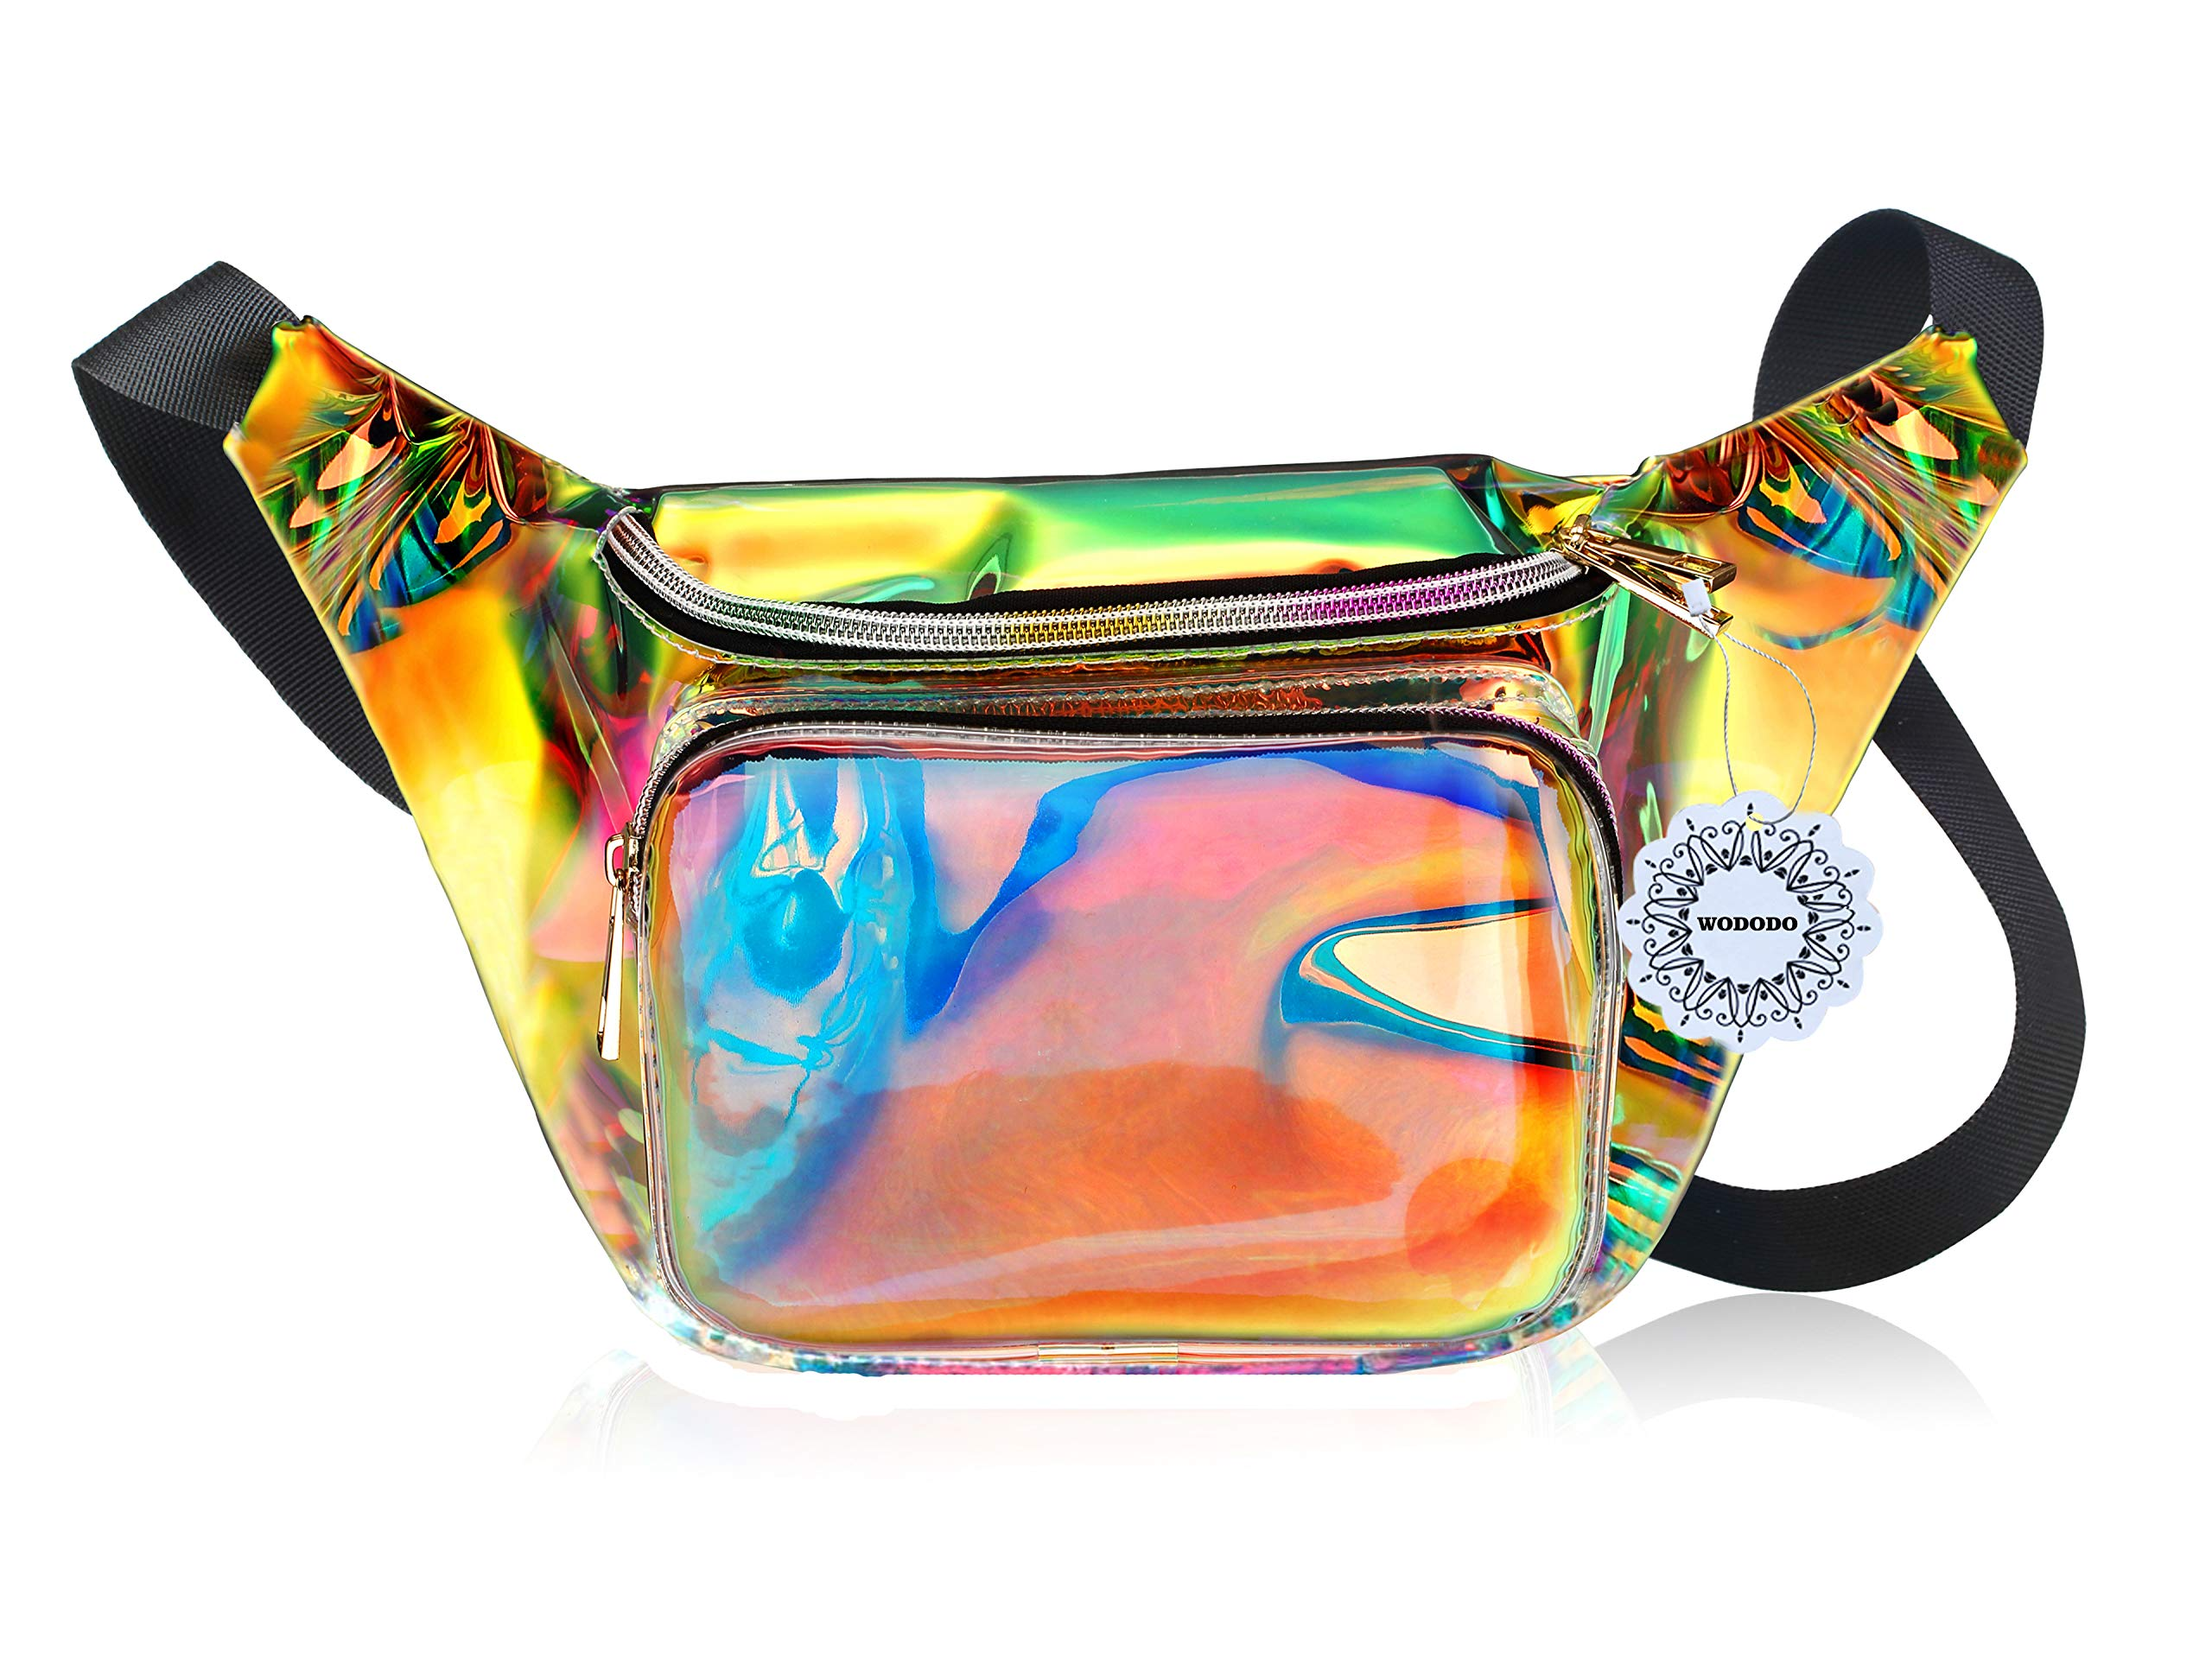 Water Resistant Shiny Neon Fanny Bag for Women Rave Festival Hologram Bum Travel Waist Pack (Multicolor)